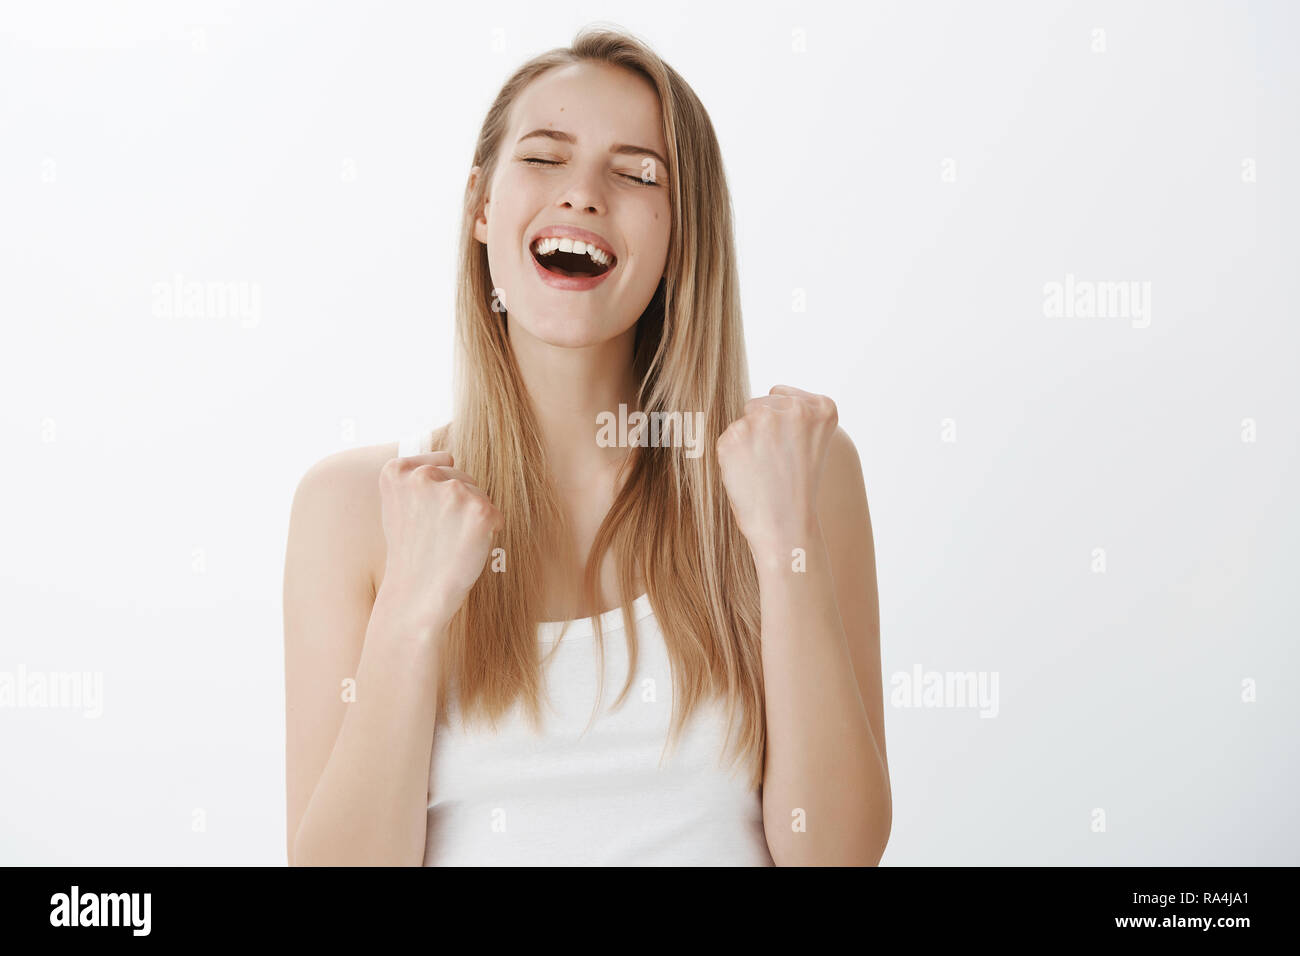 Sweet taste of success. Happy delighted and relived young woman screaming yes from victory and pleasure receiving award clenching raised fists in victory and triumoh closing eyes from satisfaction Stock Photo